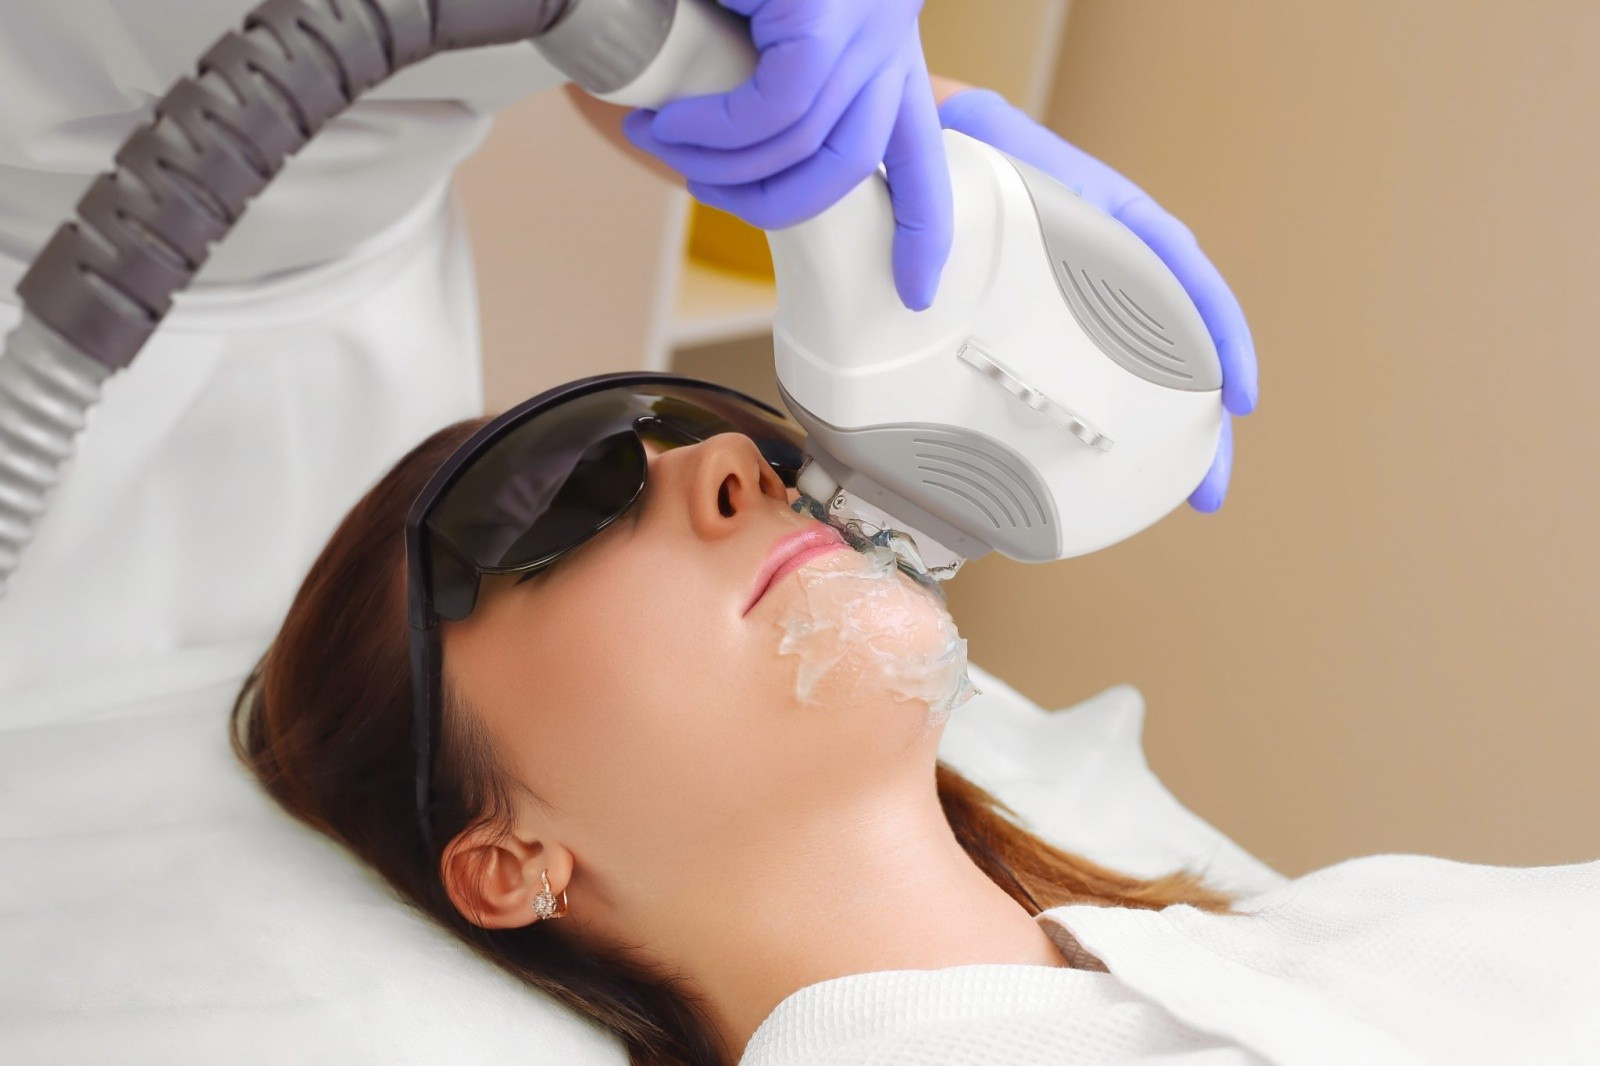 Do You Need IPL and Laser Courses for Safety Training?